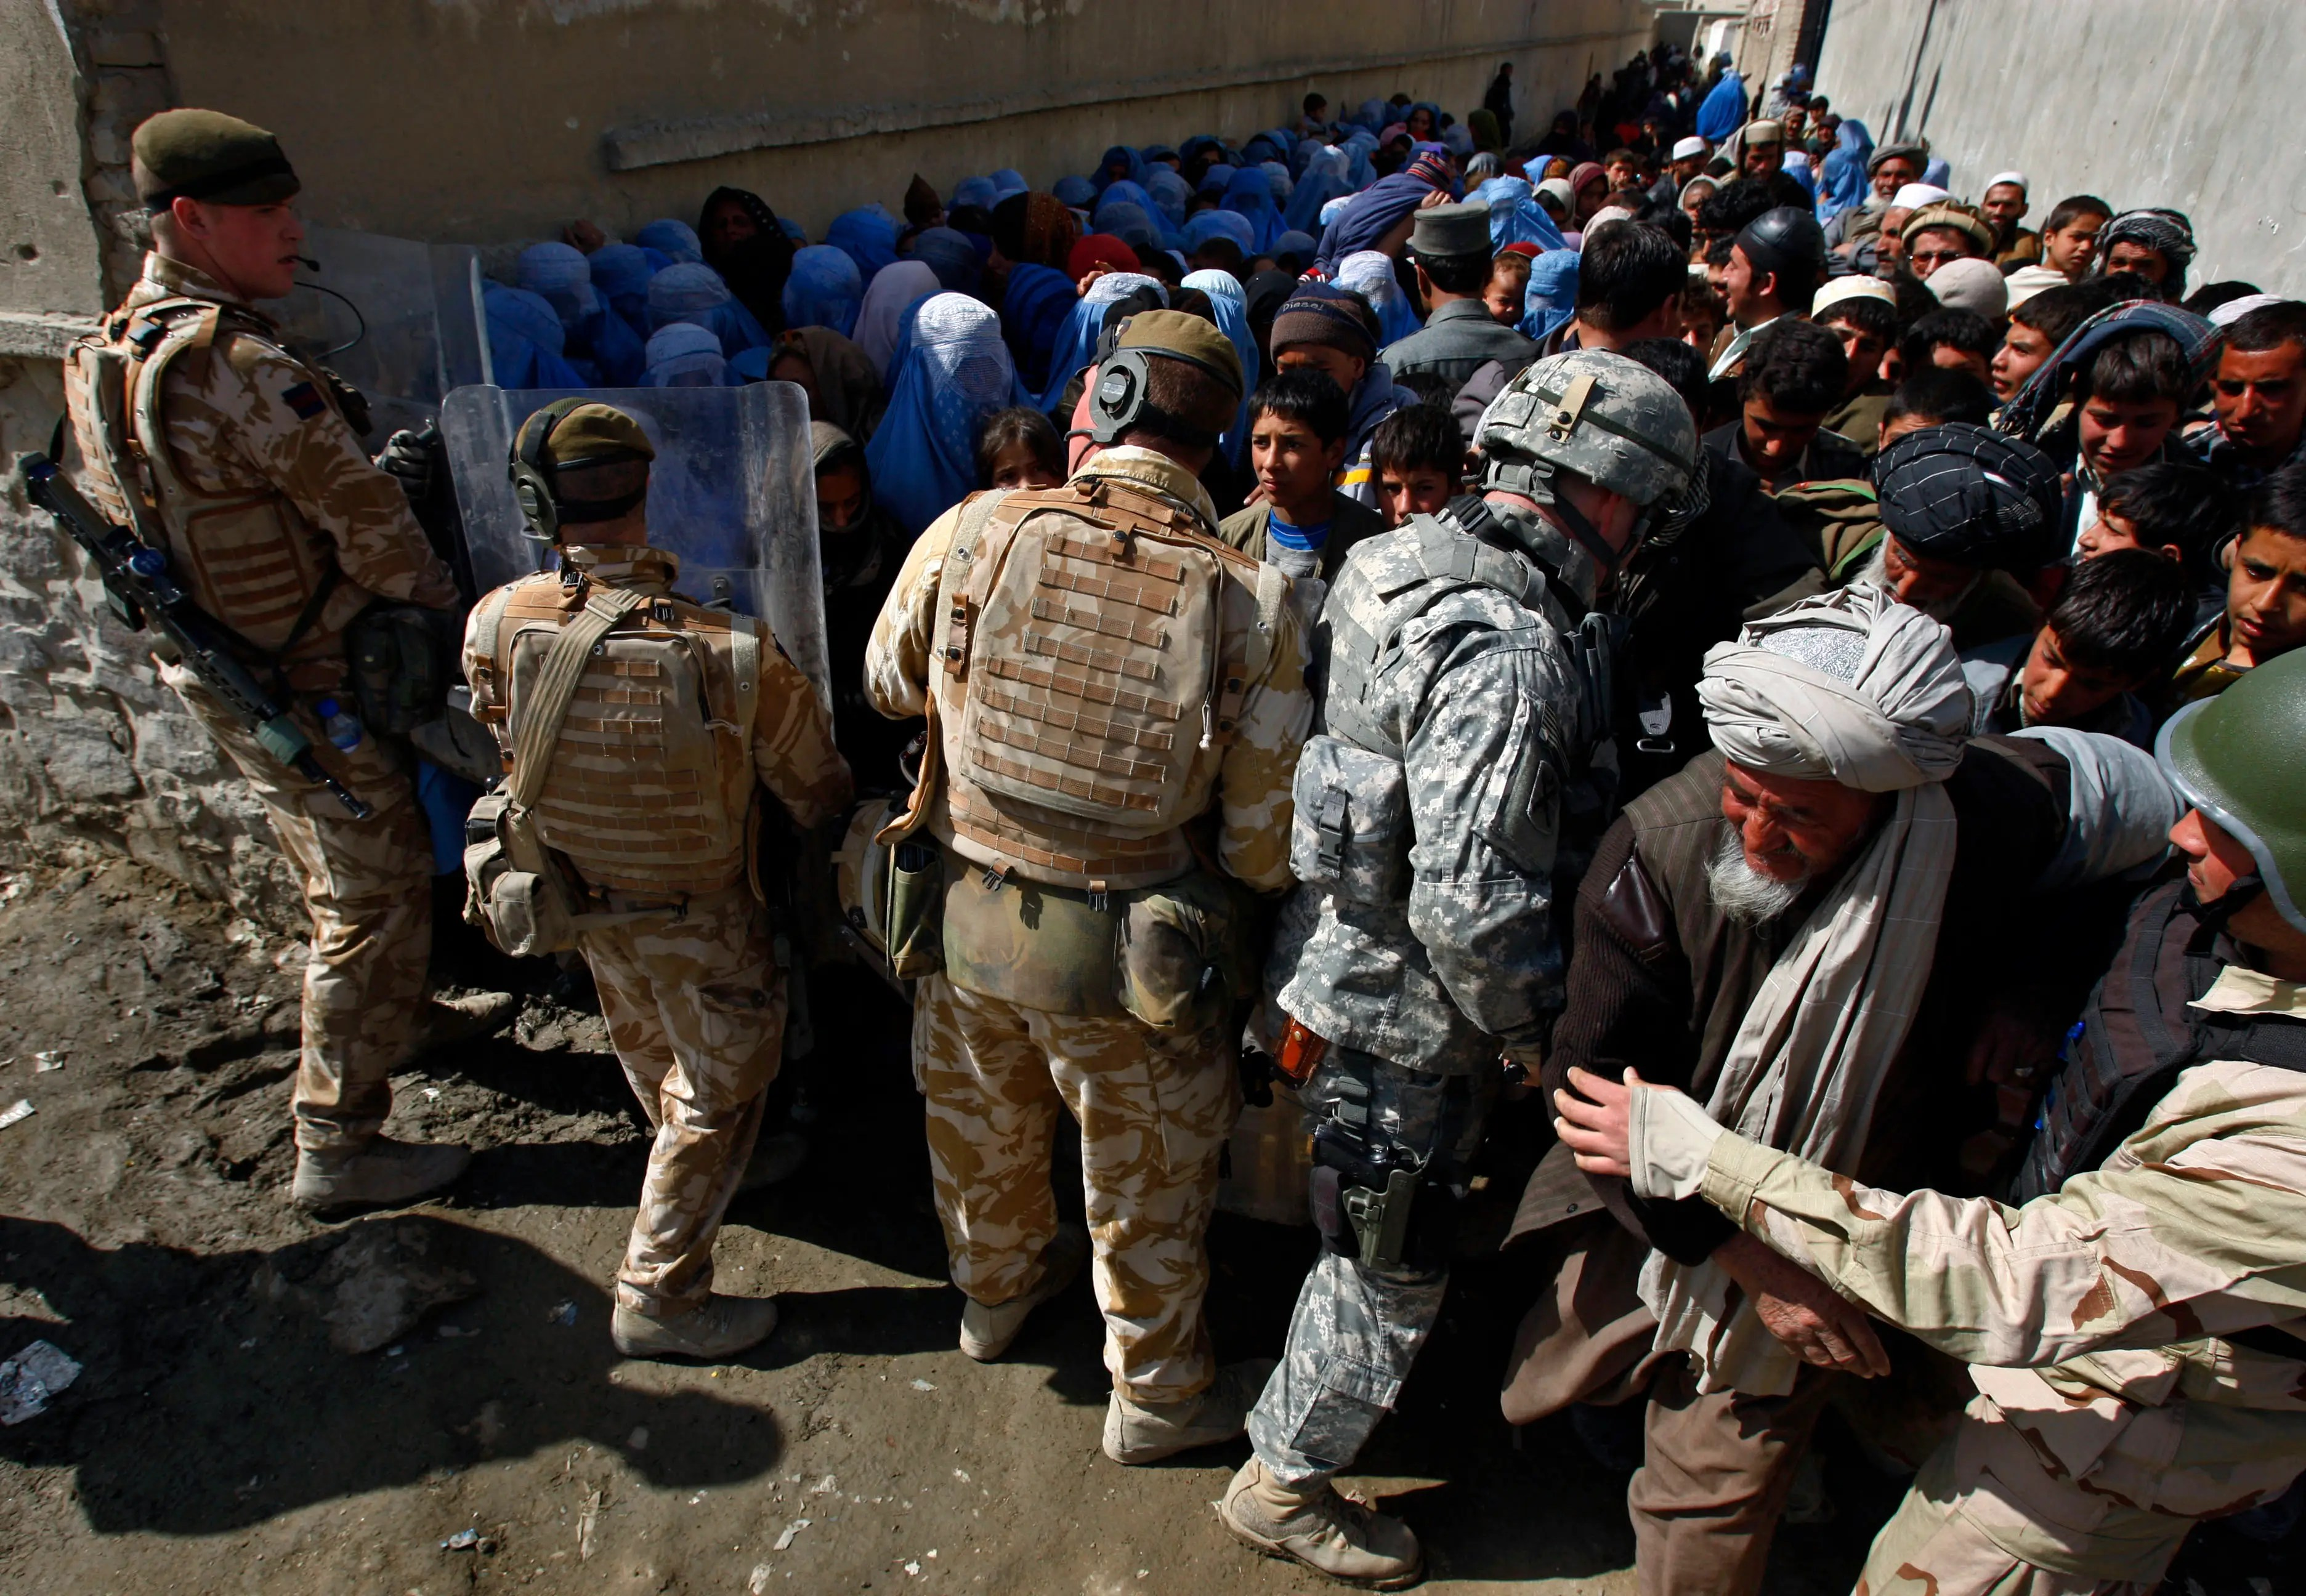 British and US soldiers control the crowd during medical assistance in Kabul, February 26, 2008.